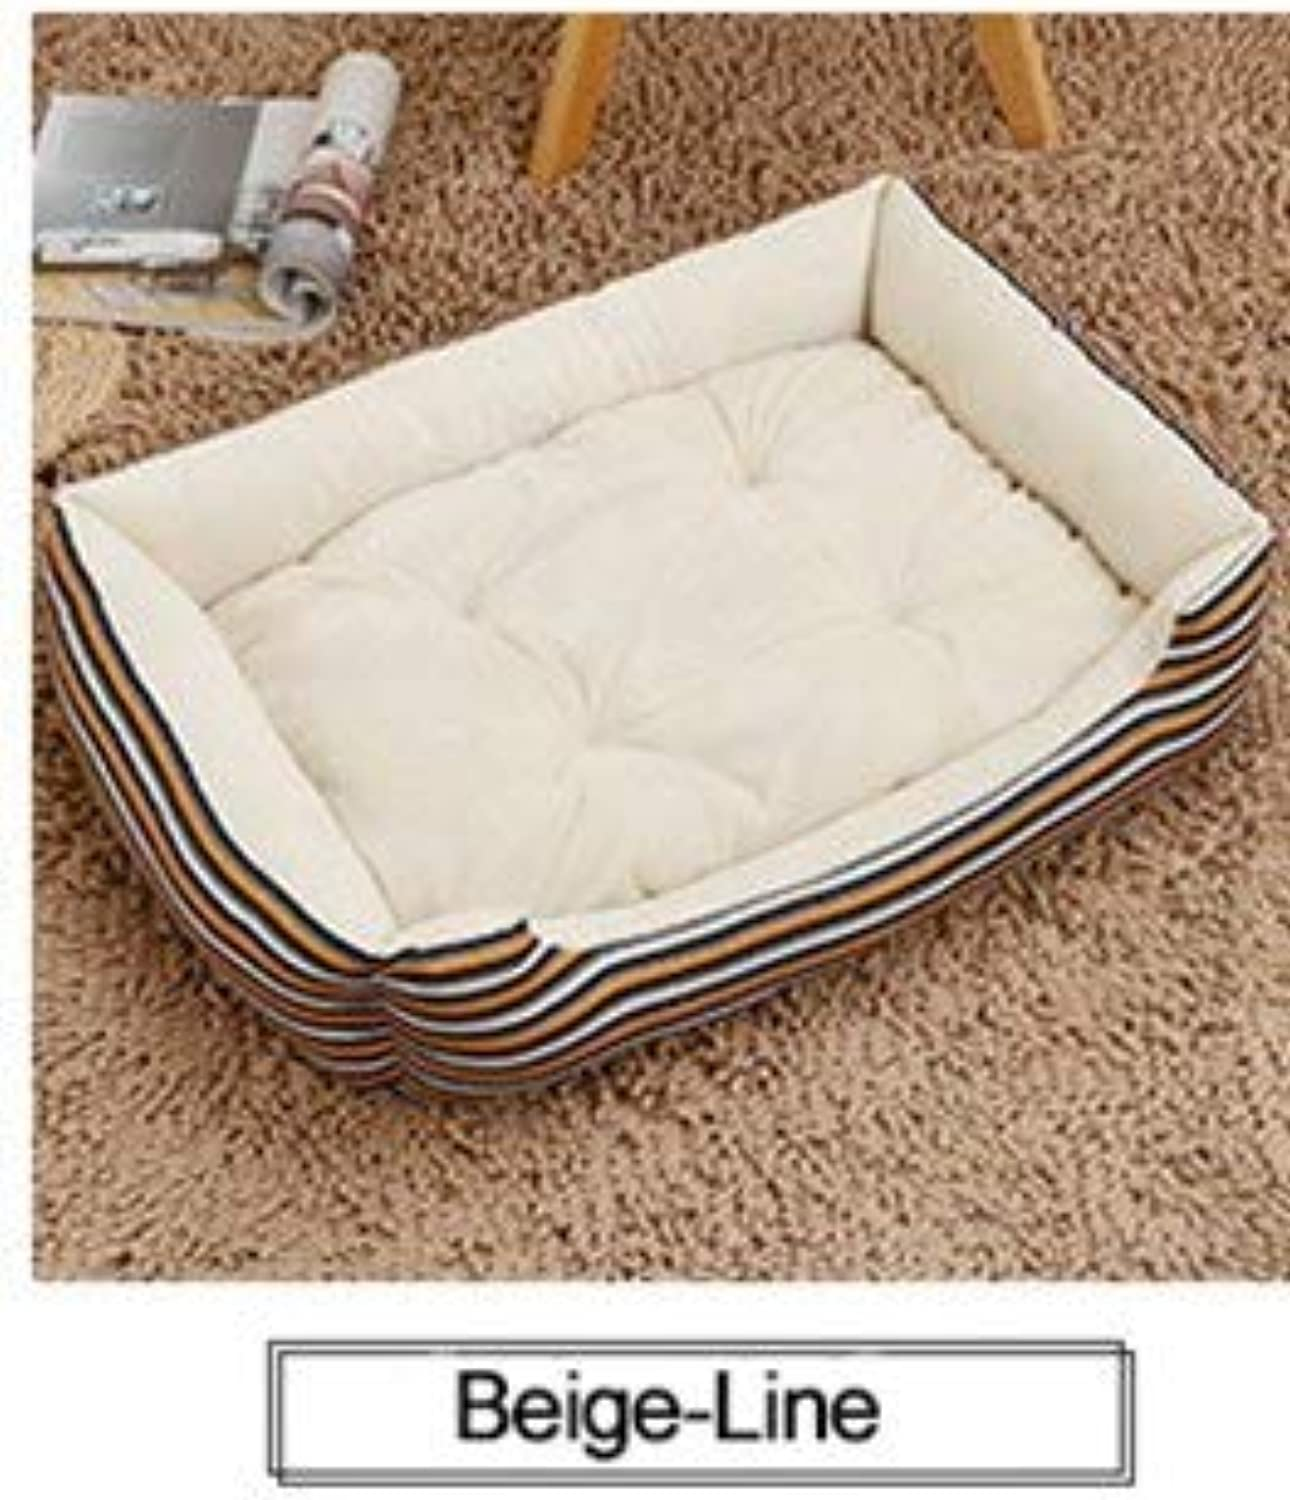 Aigou Dog Bed Grid Large Dog Bed Mat Kennel Soft Puppy Warm Bed House Pet Supplies Pet Cozy Nest For Small Medium Large Dogs